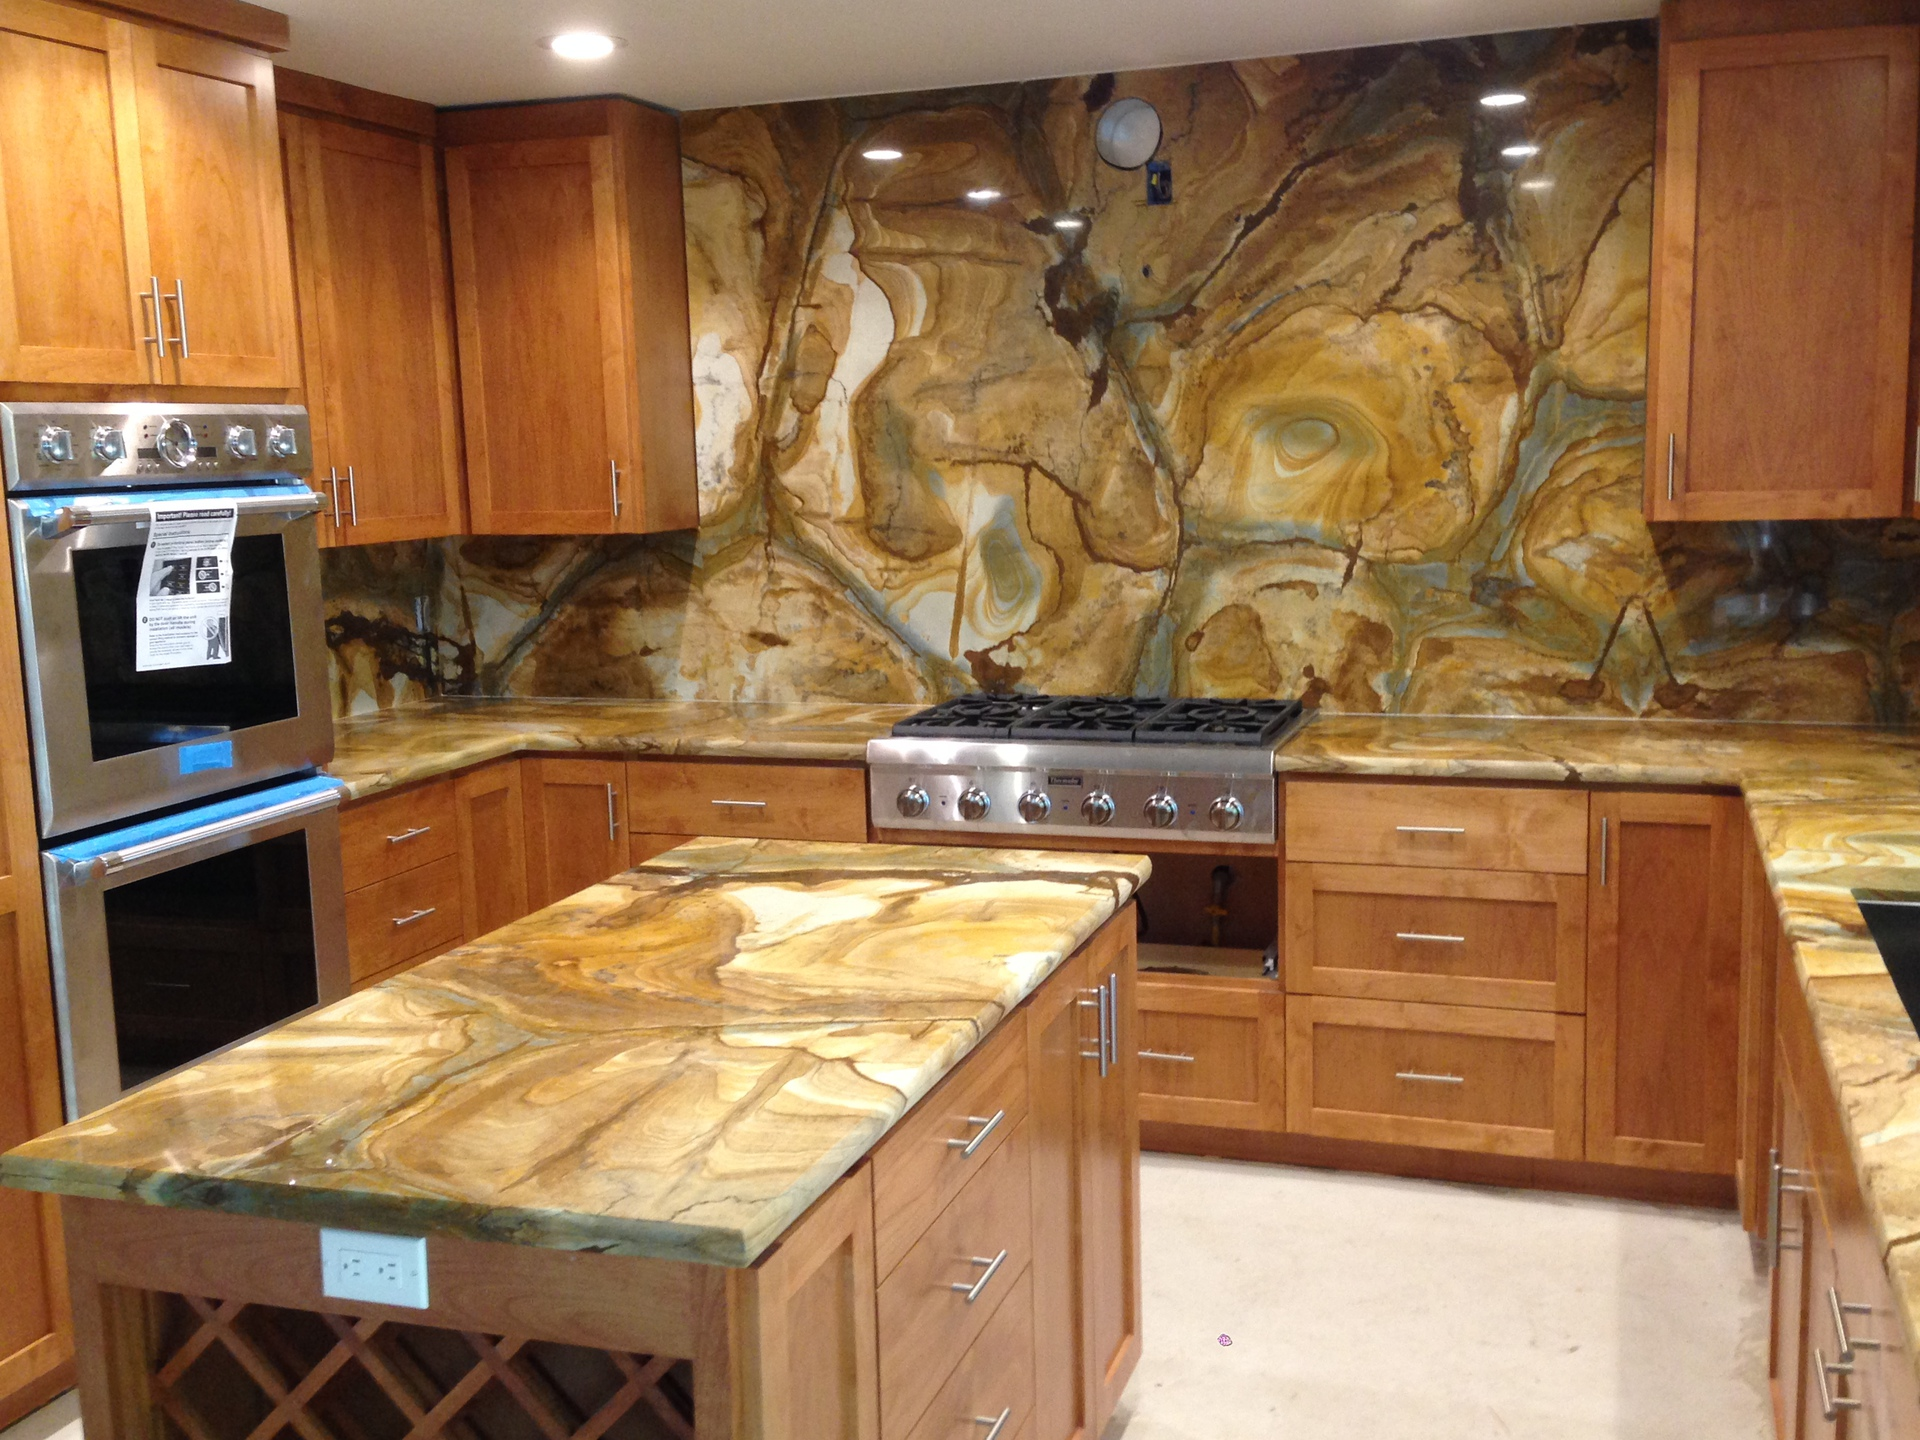 granite kitchen countertops oakland ca - Granite Kitchen Countertops